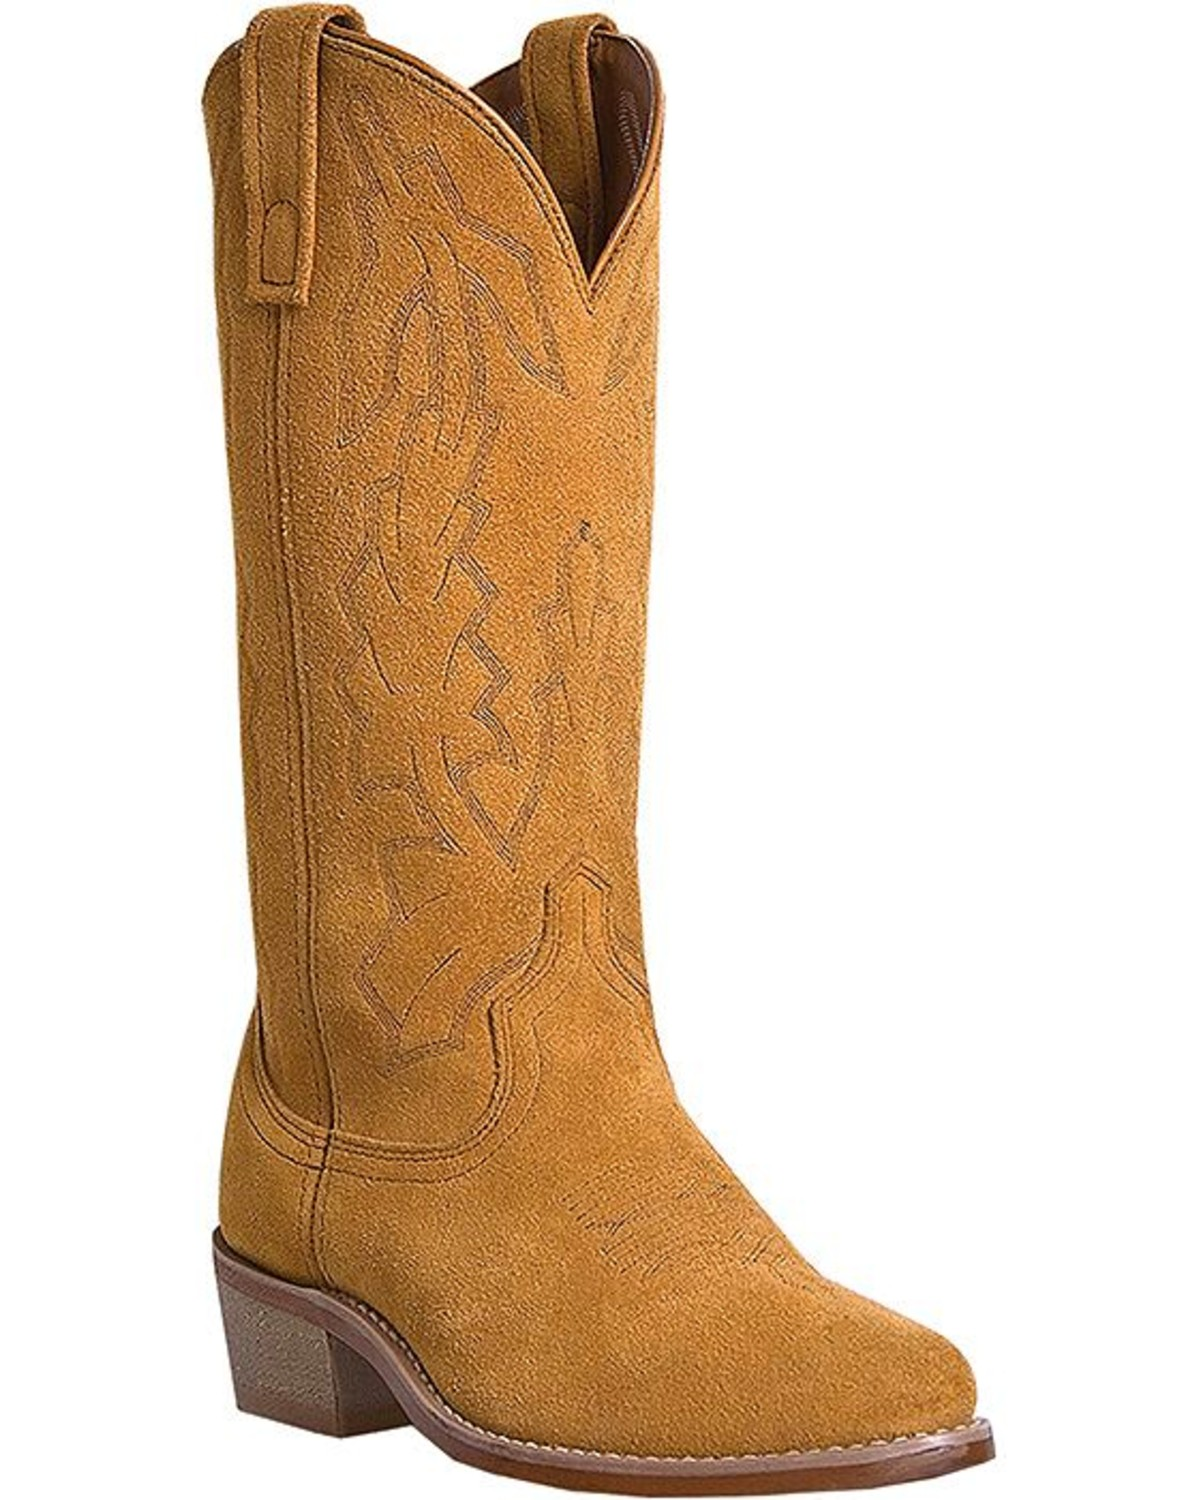 Black Western Boots For Kids